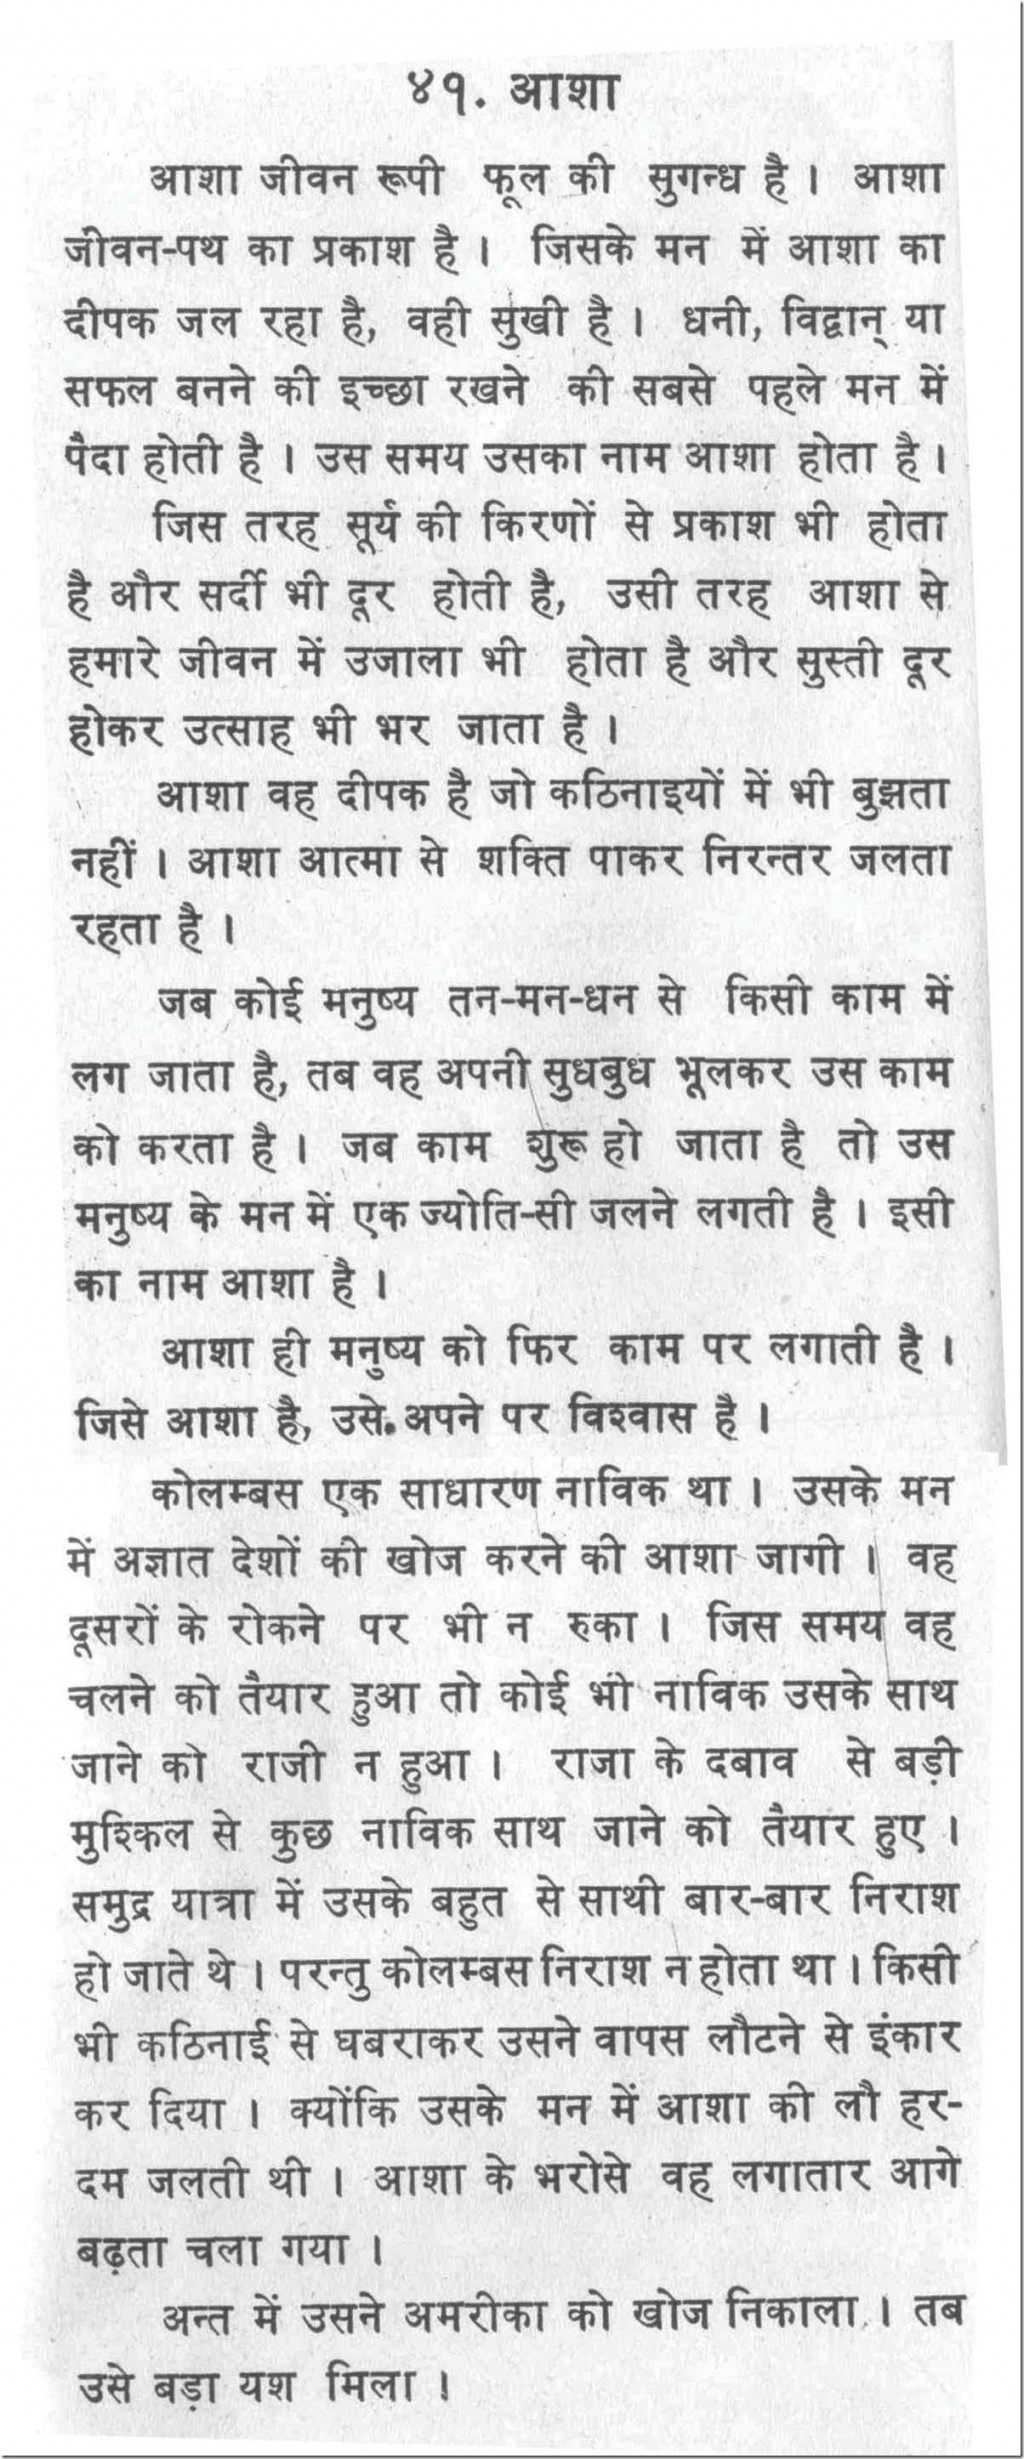 003 Hope Essay 10031 Thumb Phenomenal In Hindi Pope On Man Quotes Analysis Large